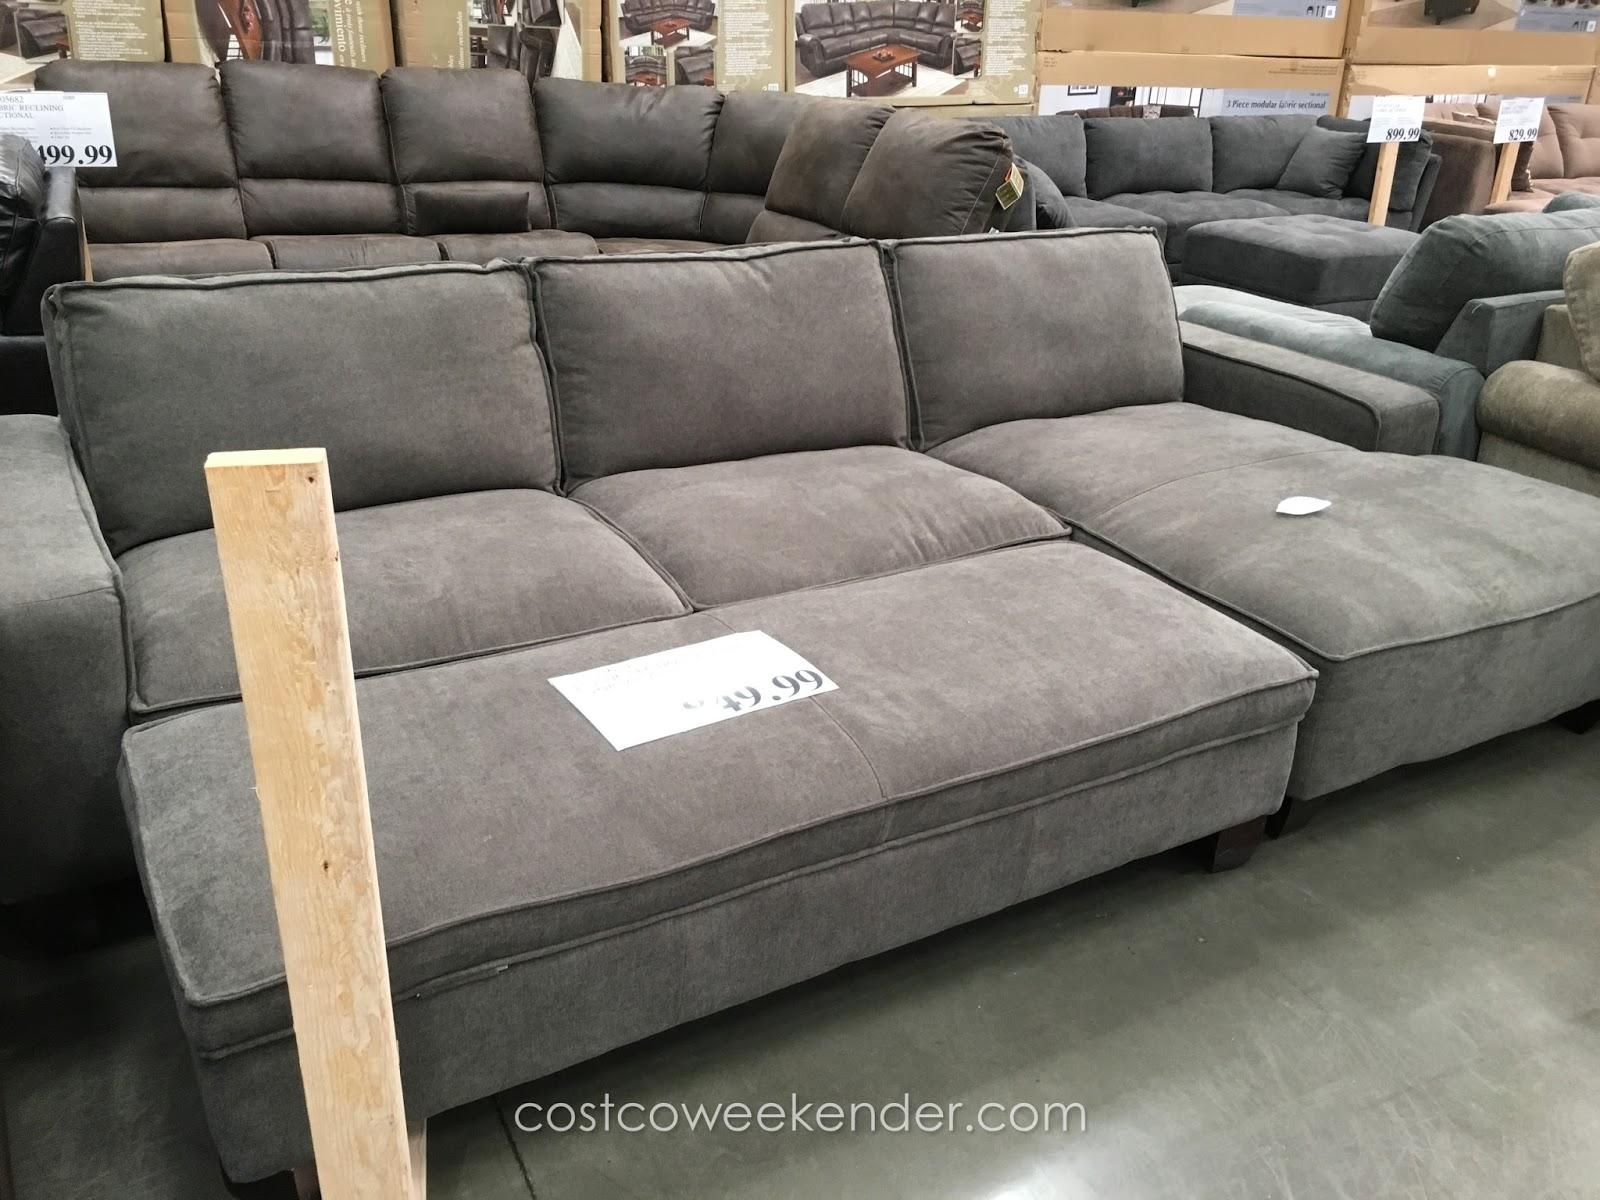 Sleeper Sectional Sofa With Storage Chaise | Tehranmix Decoration In Sectional Sofa With Storage (Photo 7 of 20)